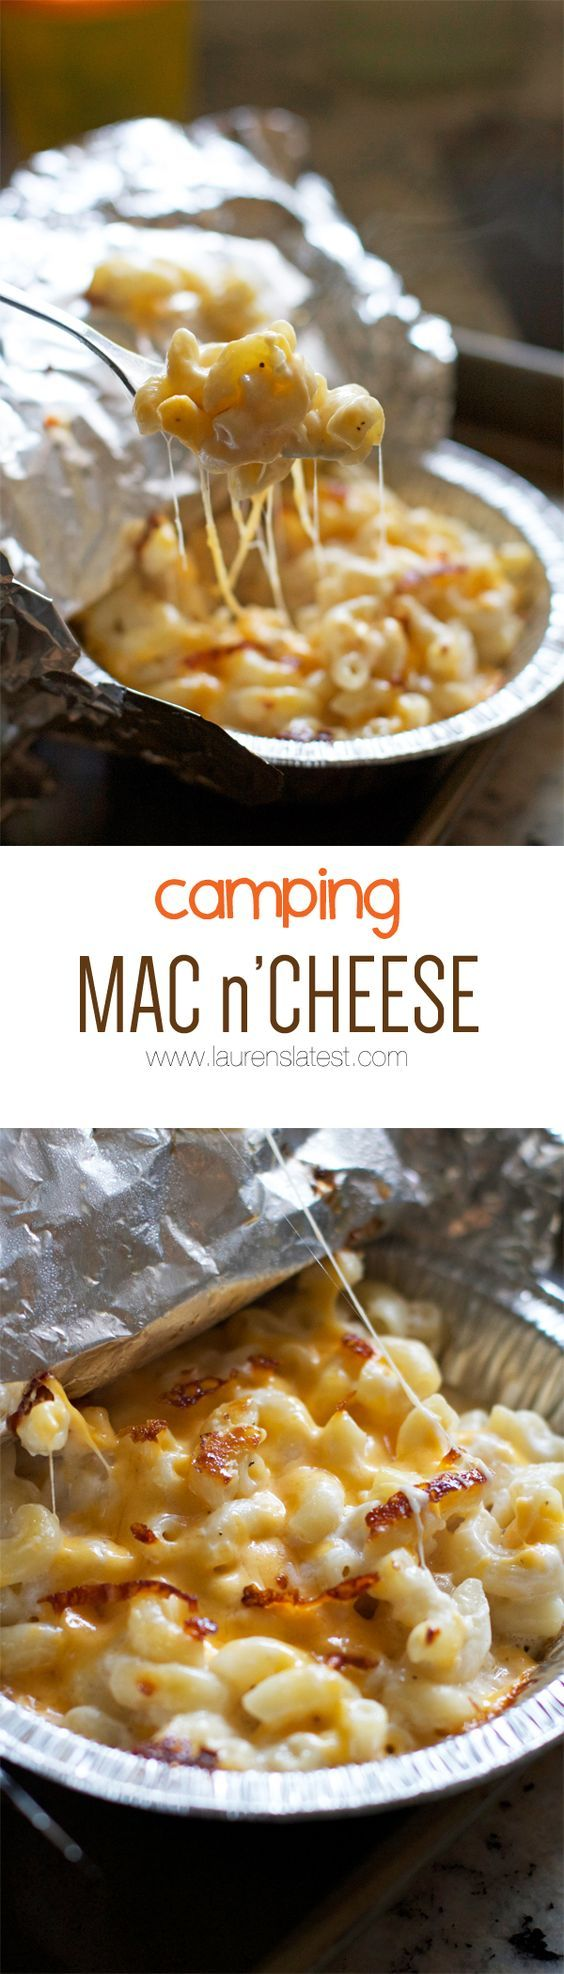 Camping Mac and Cheese!